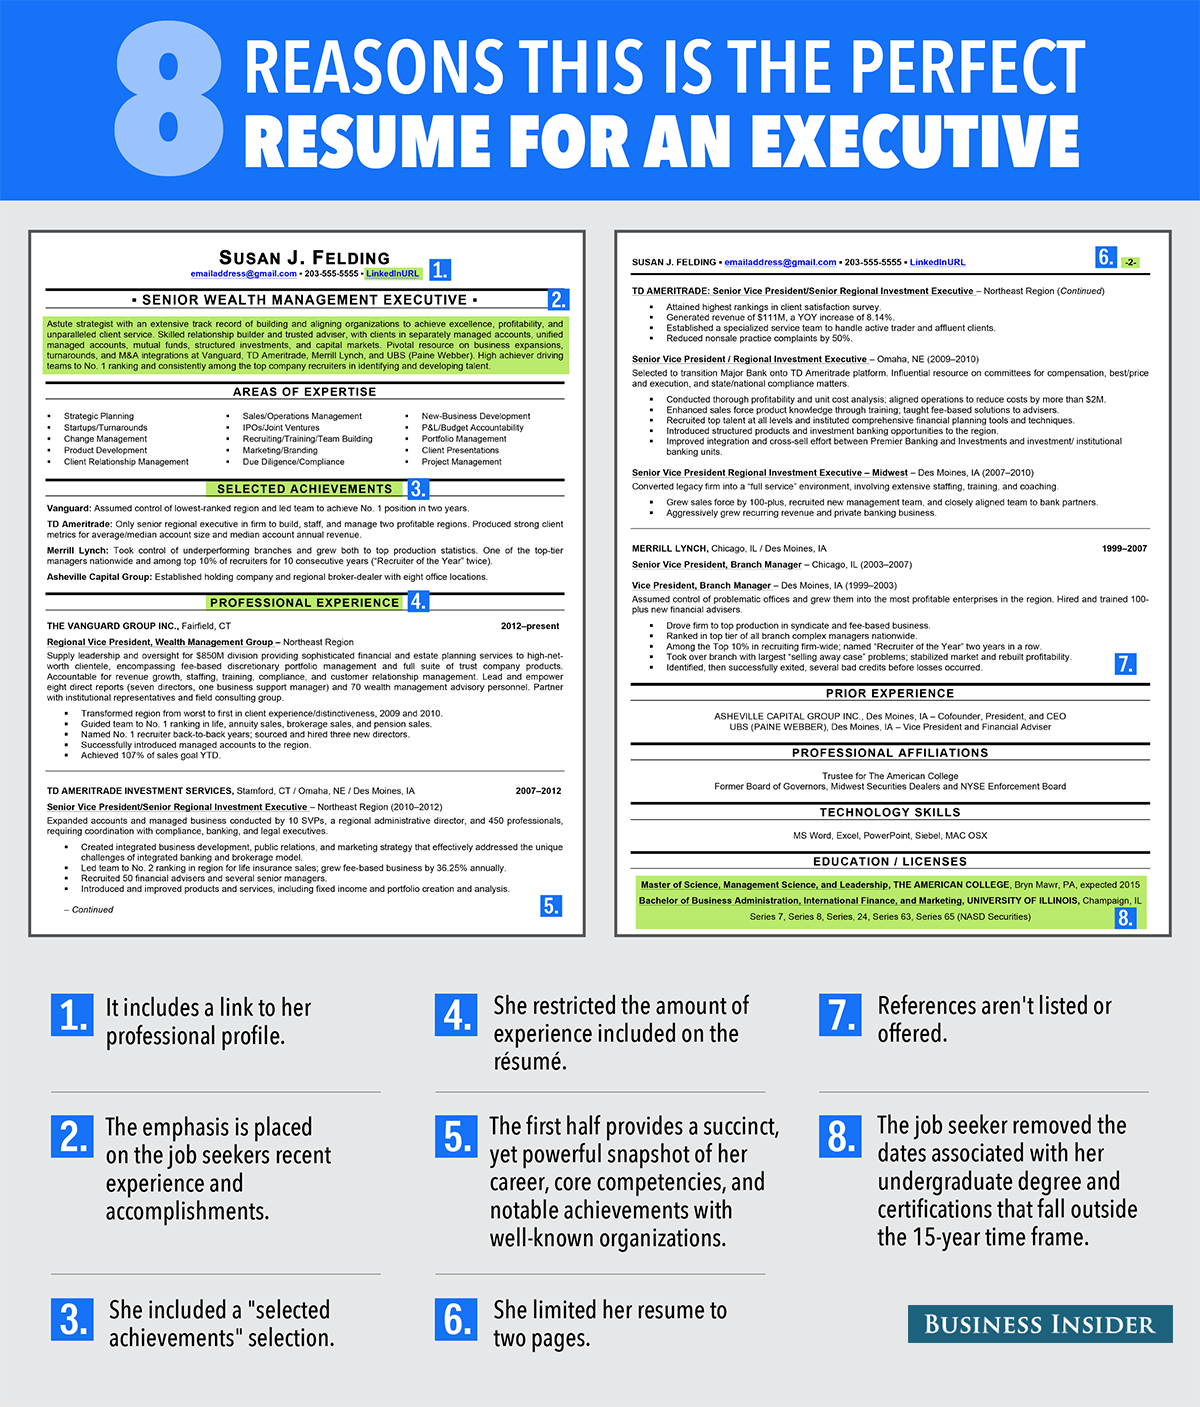 How Do You Add A Resume To Linkedin Your Career 8 Reasons This Is An Ideal Résumé For Someone